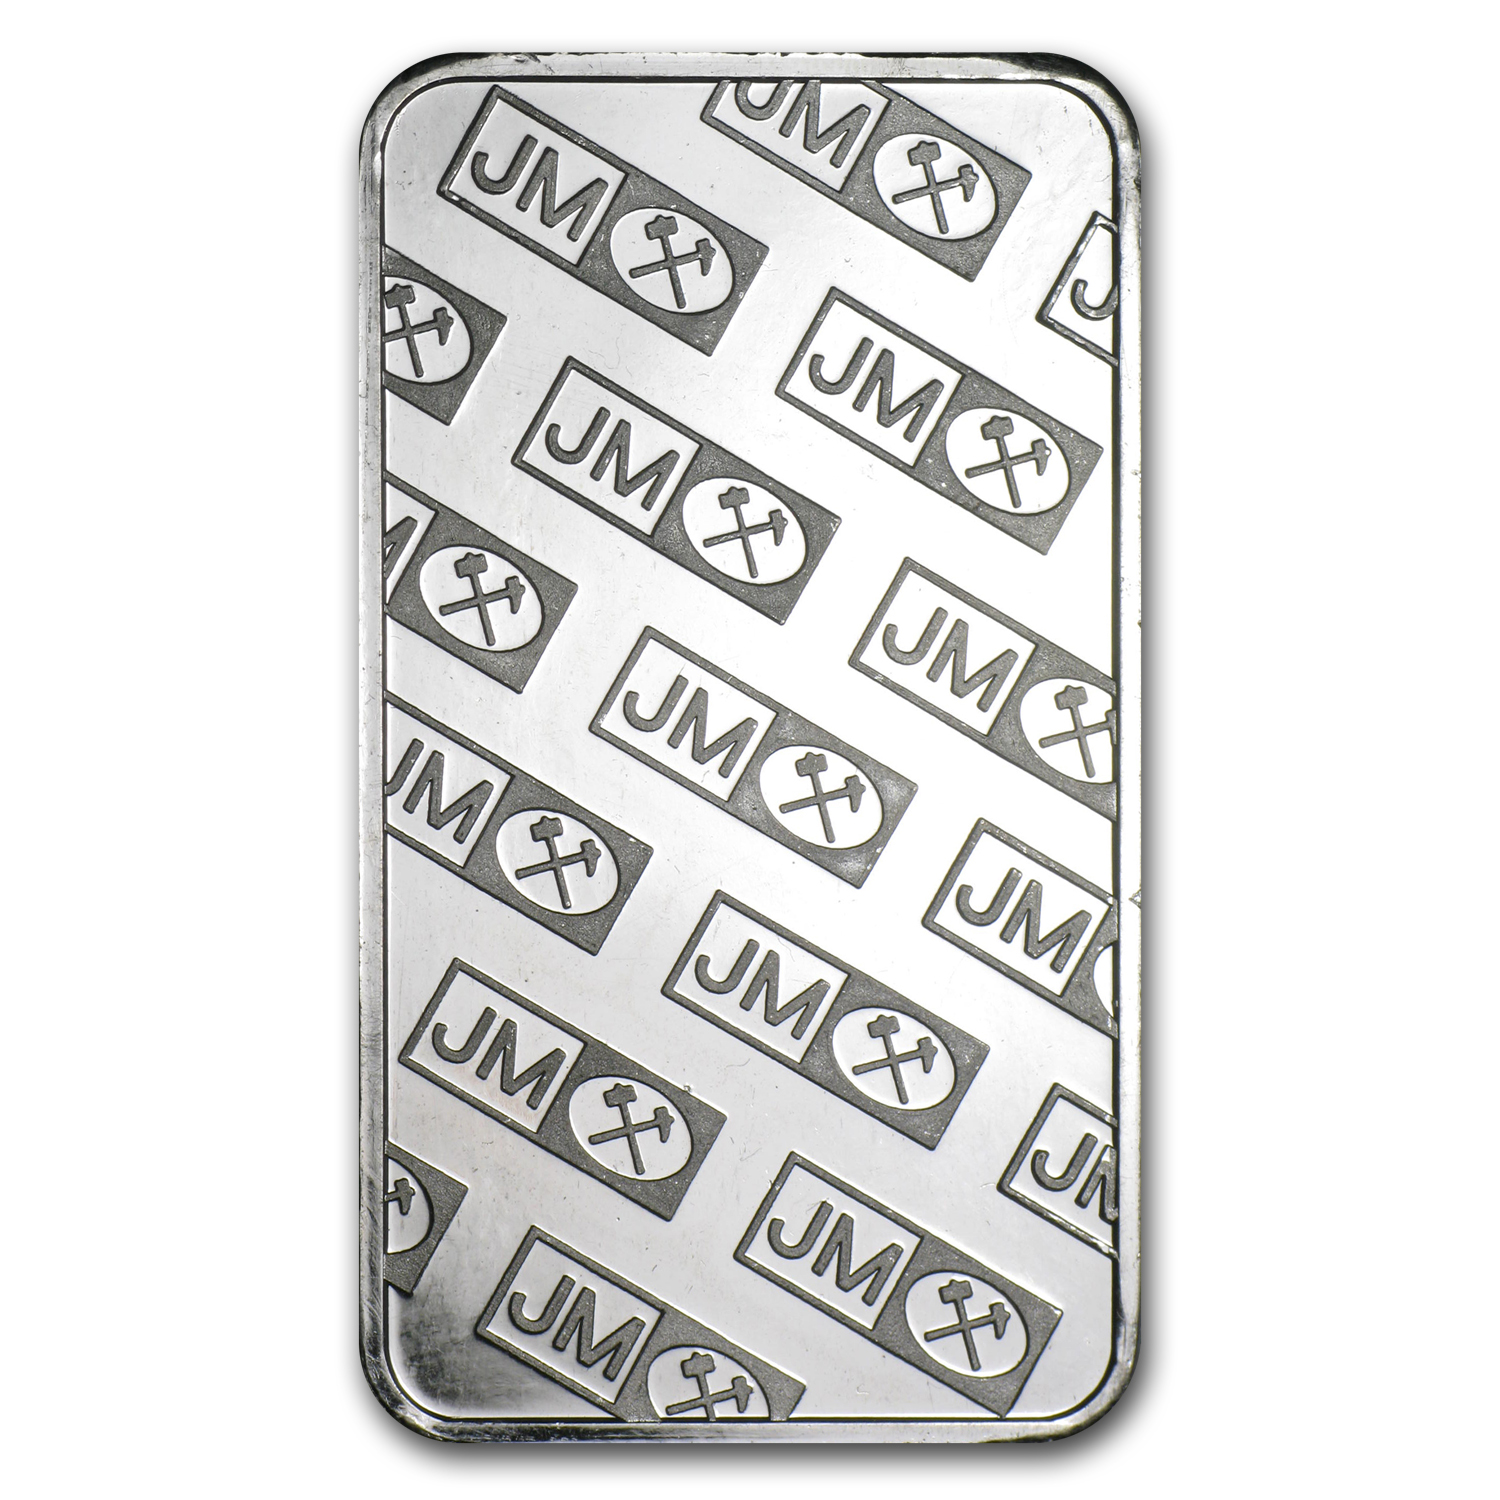 5 oz Johnson Matthey Platinum Bar (w/out Assay) .9995 Fine